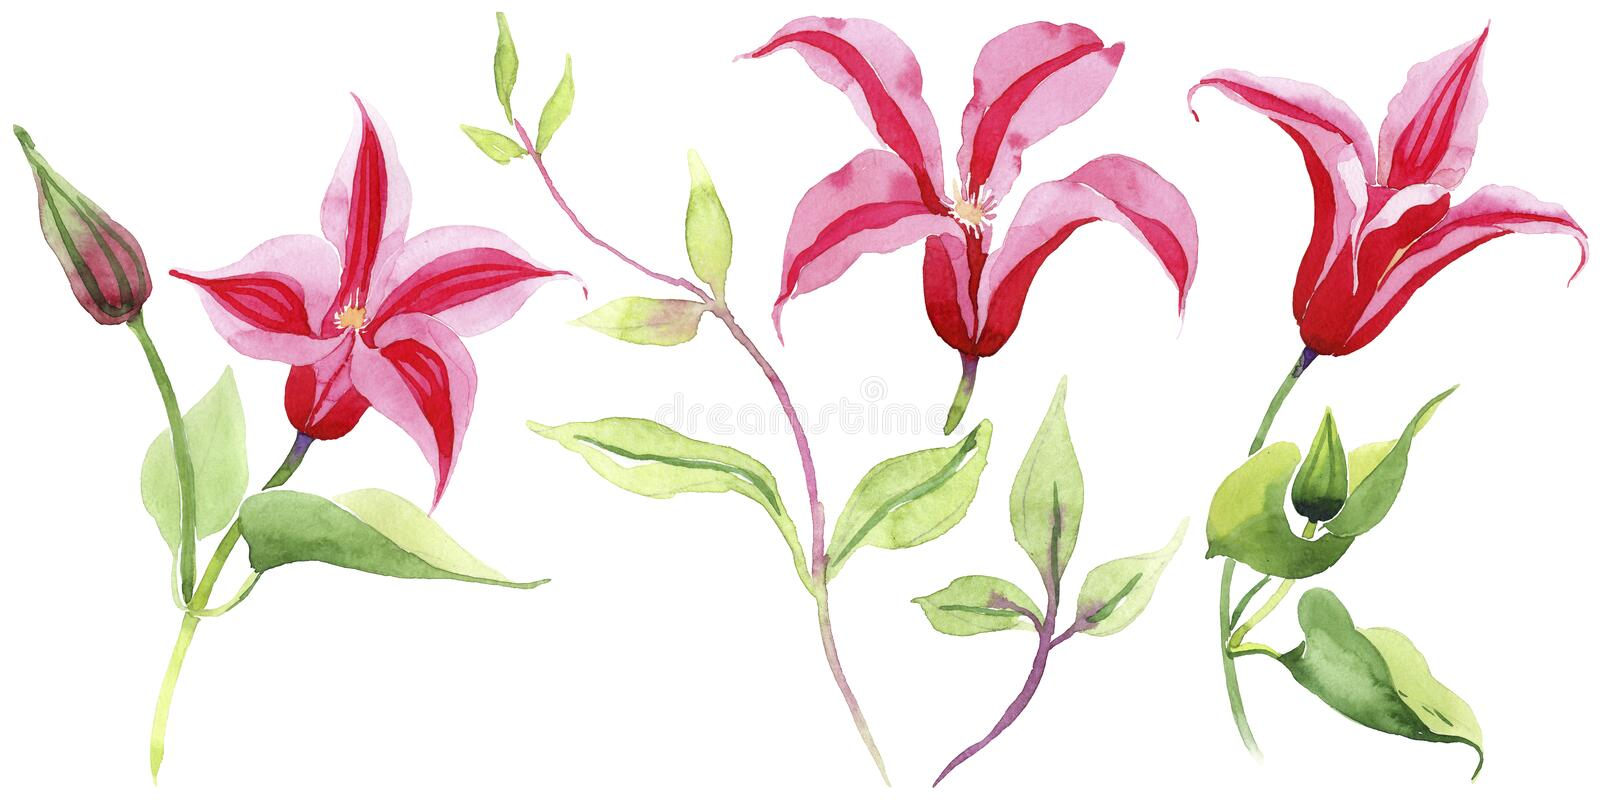 Red clematis. Floral botanical flower. Wild spring leaf wildflower isolated. Aquarelle wildflower for background, texture, wrapper pattern, frame or border stock illustration